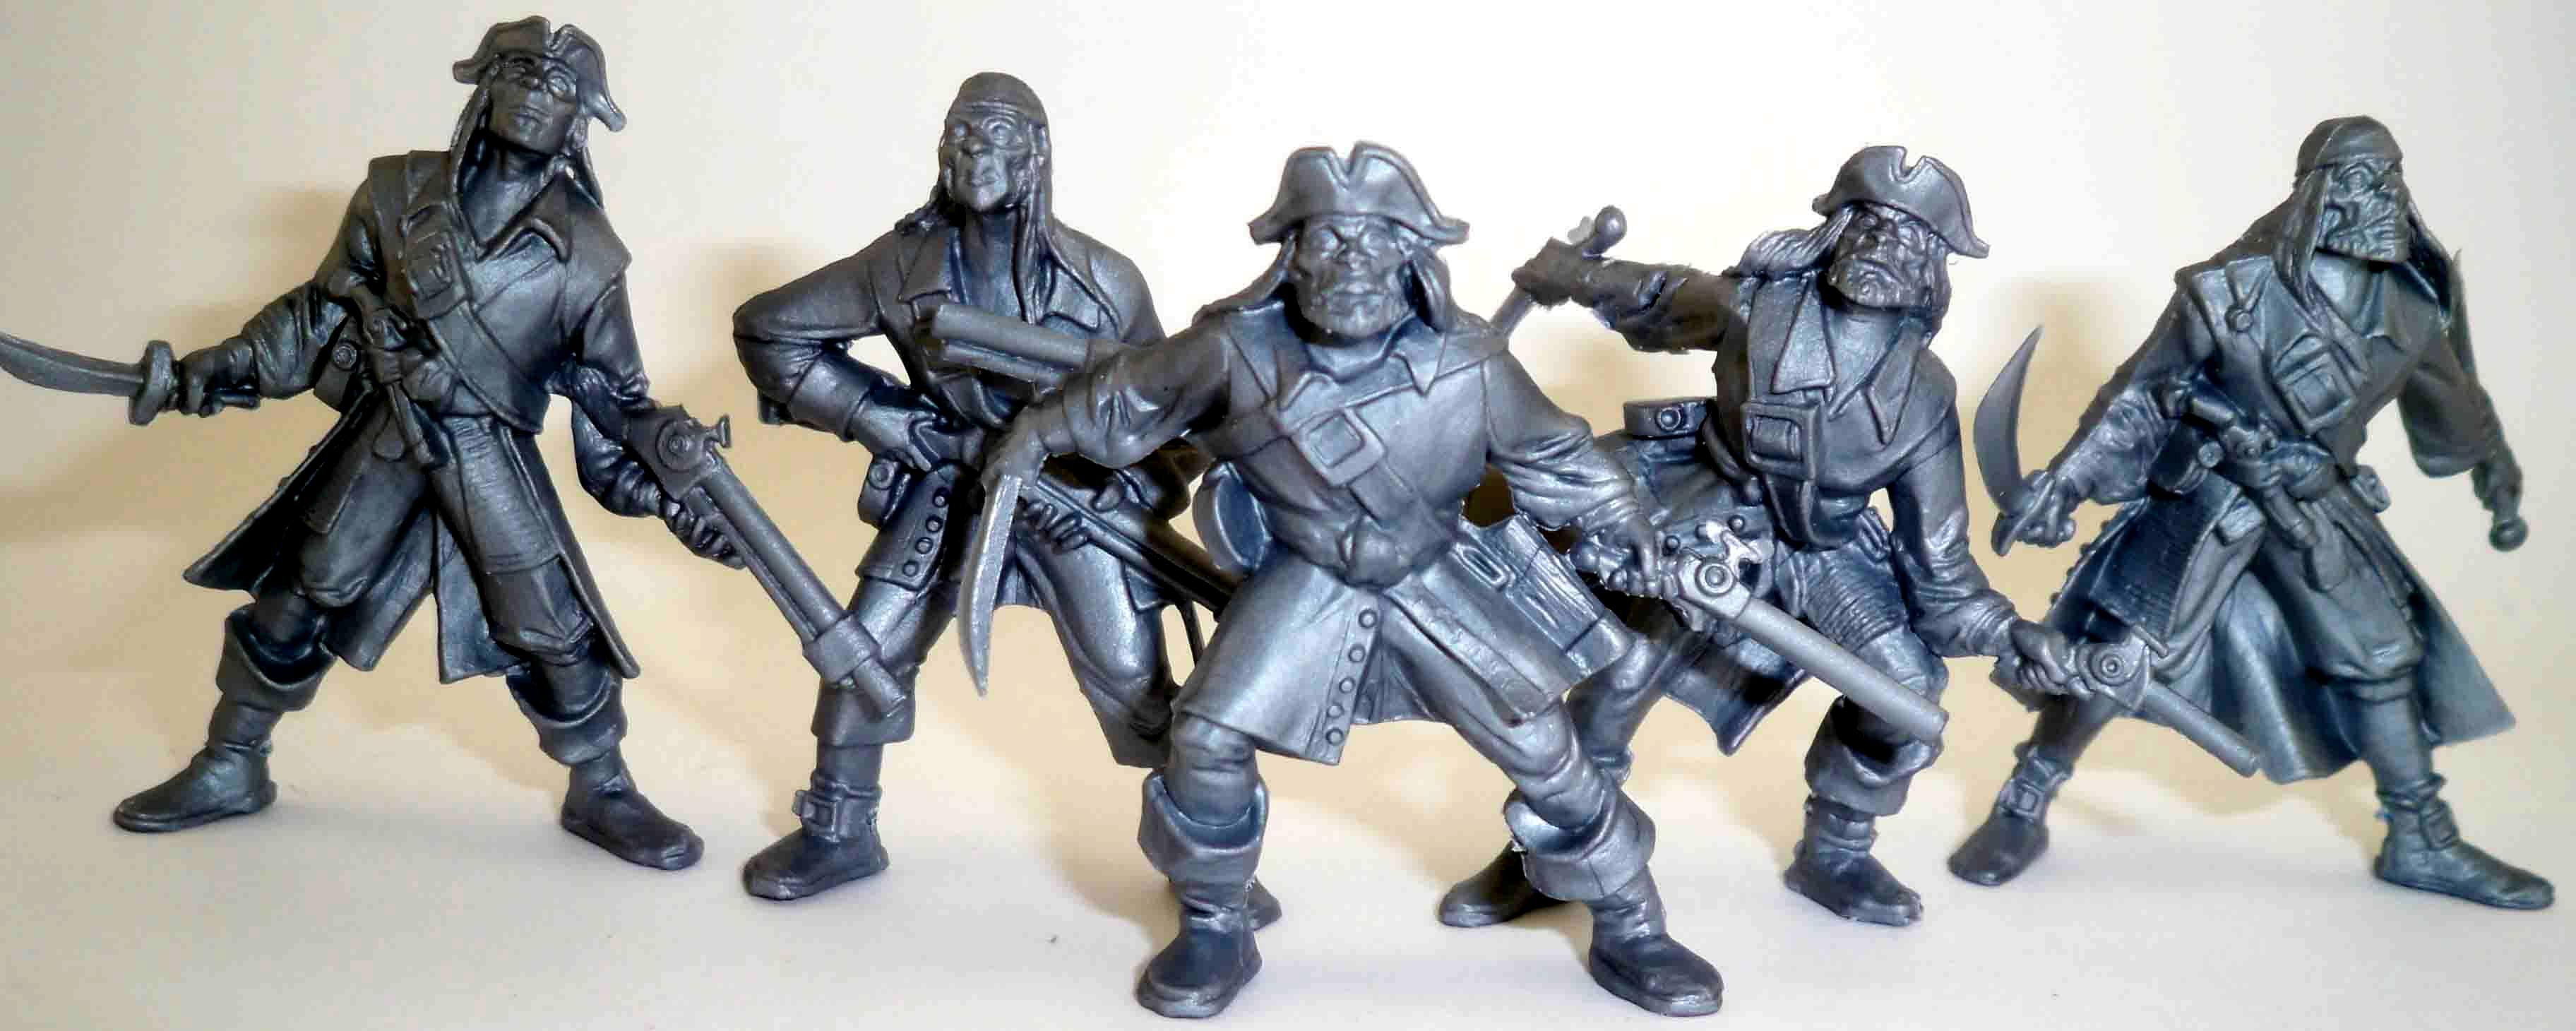 54mm. Toy Soldier Pirate